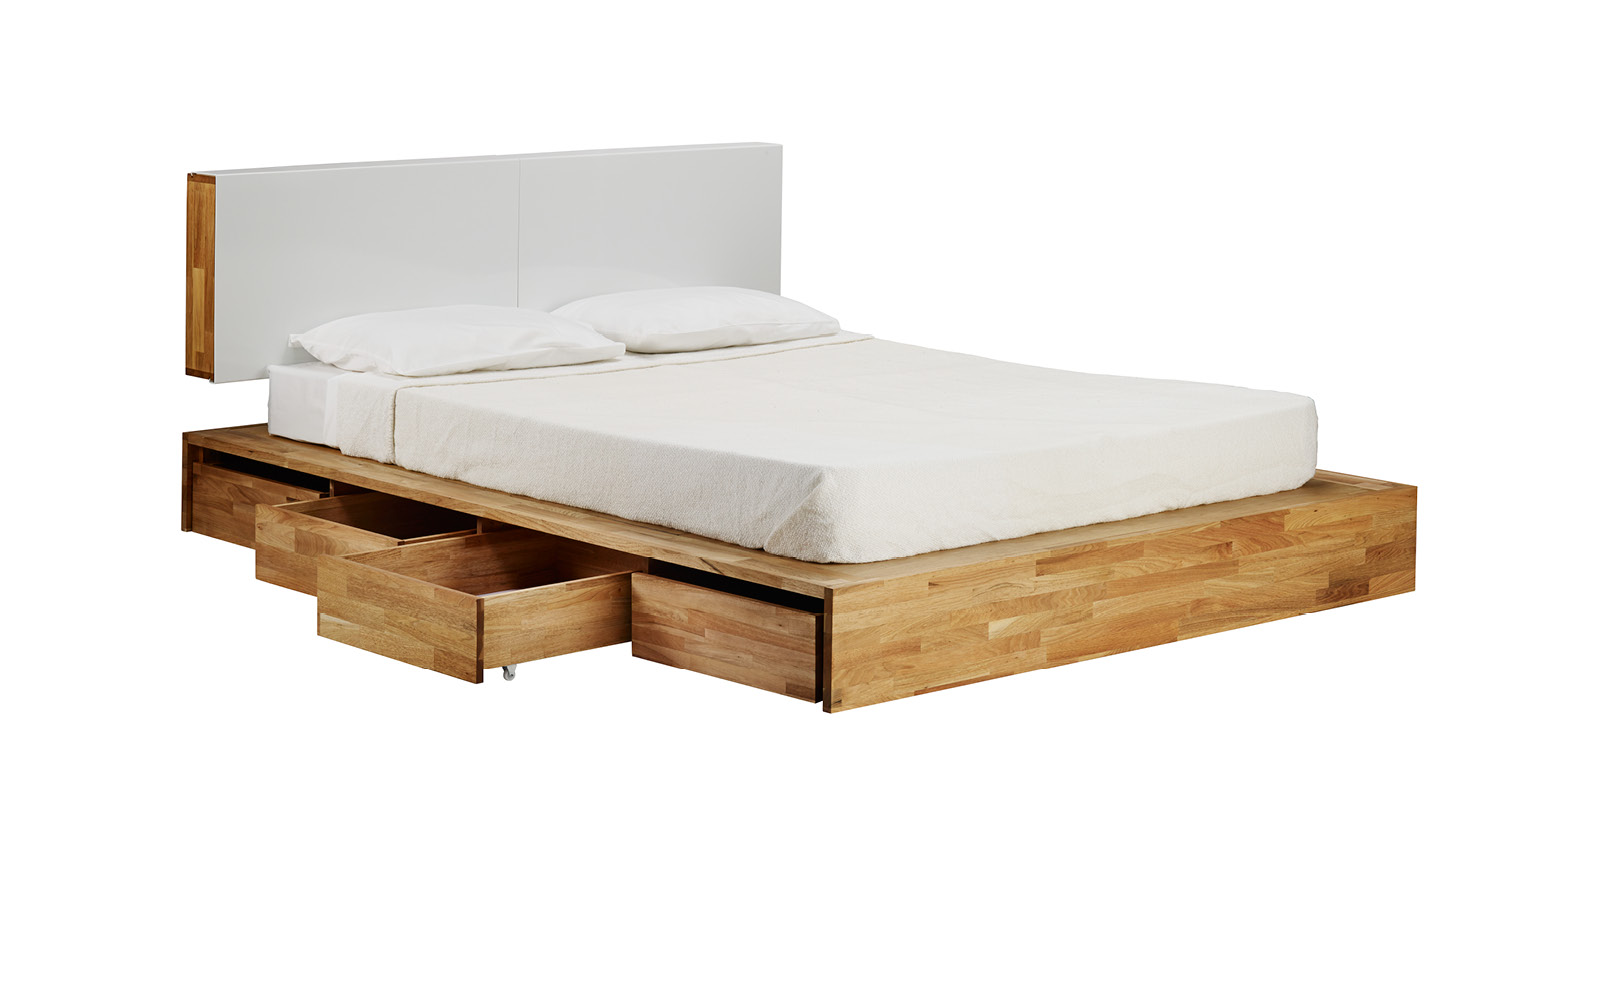 Bed with storage space bed GTLDQTK